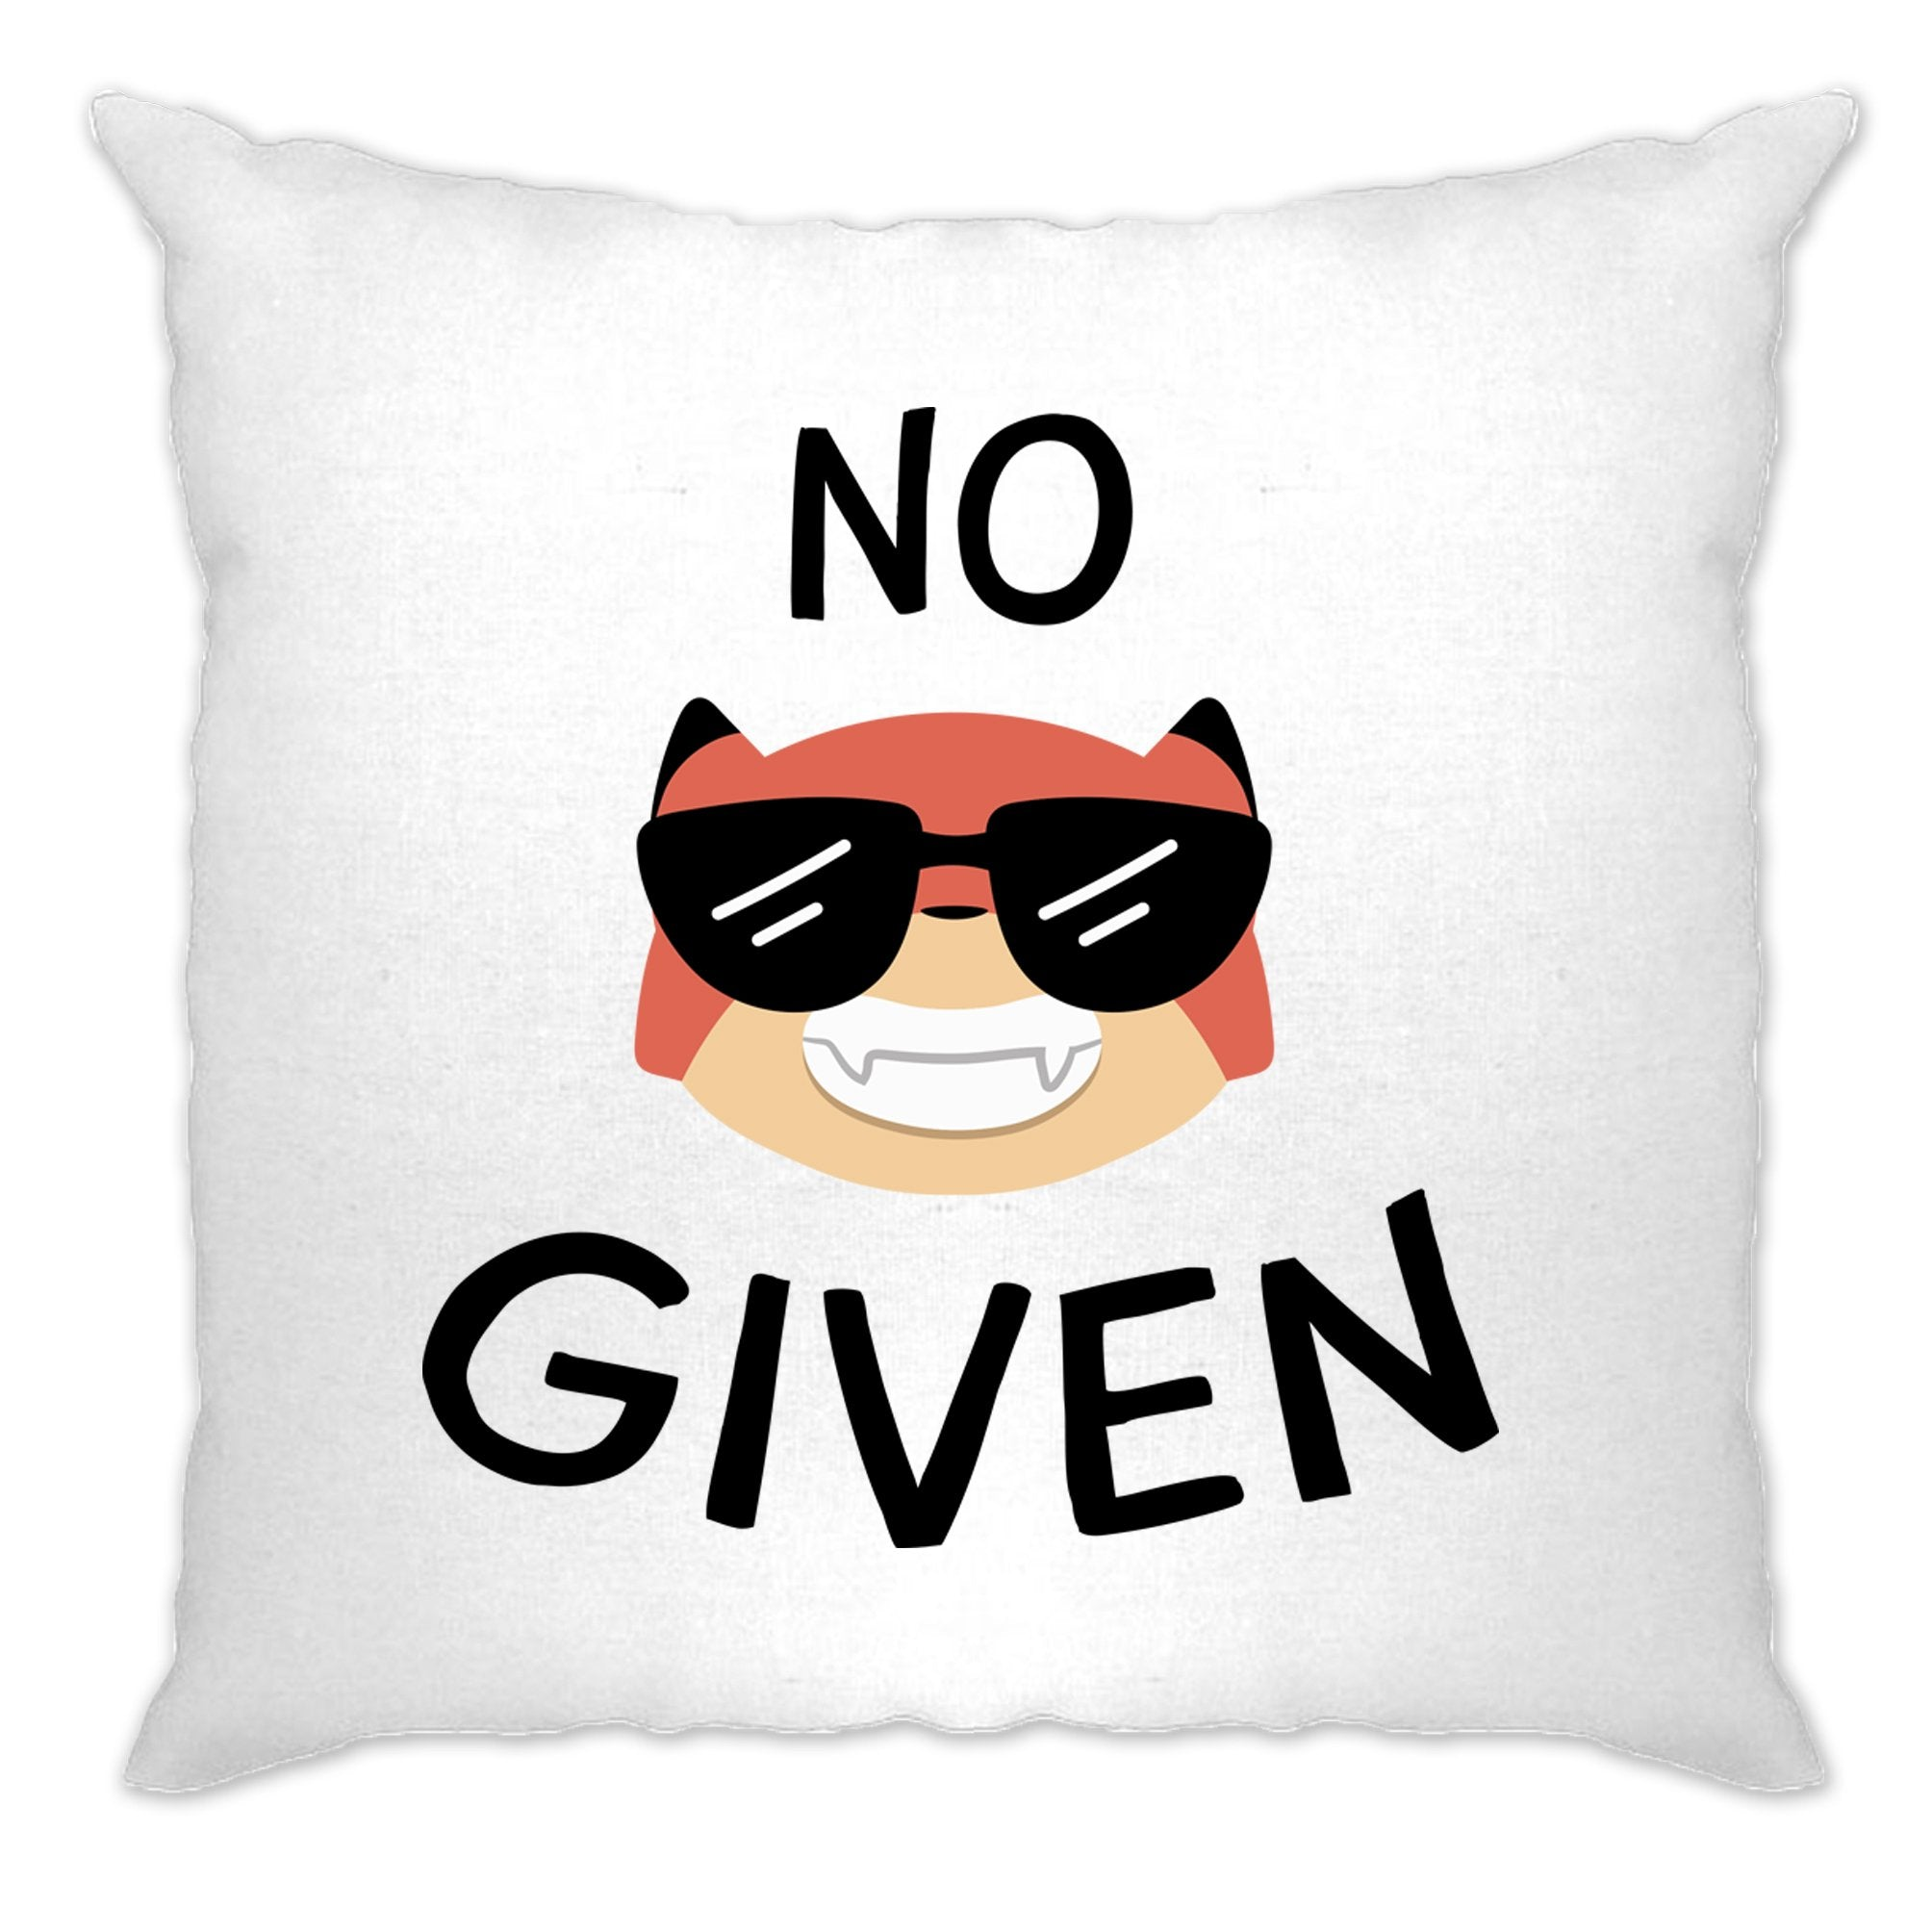 Novelty Animal Pun Cushion Cover No Fox Given Joke